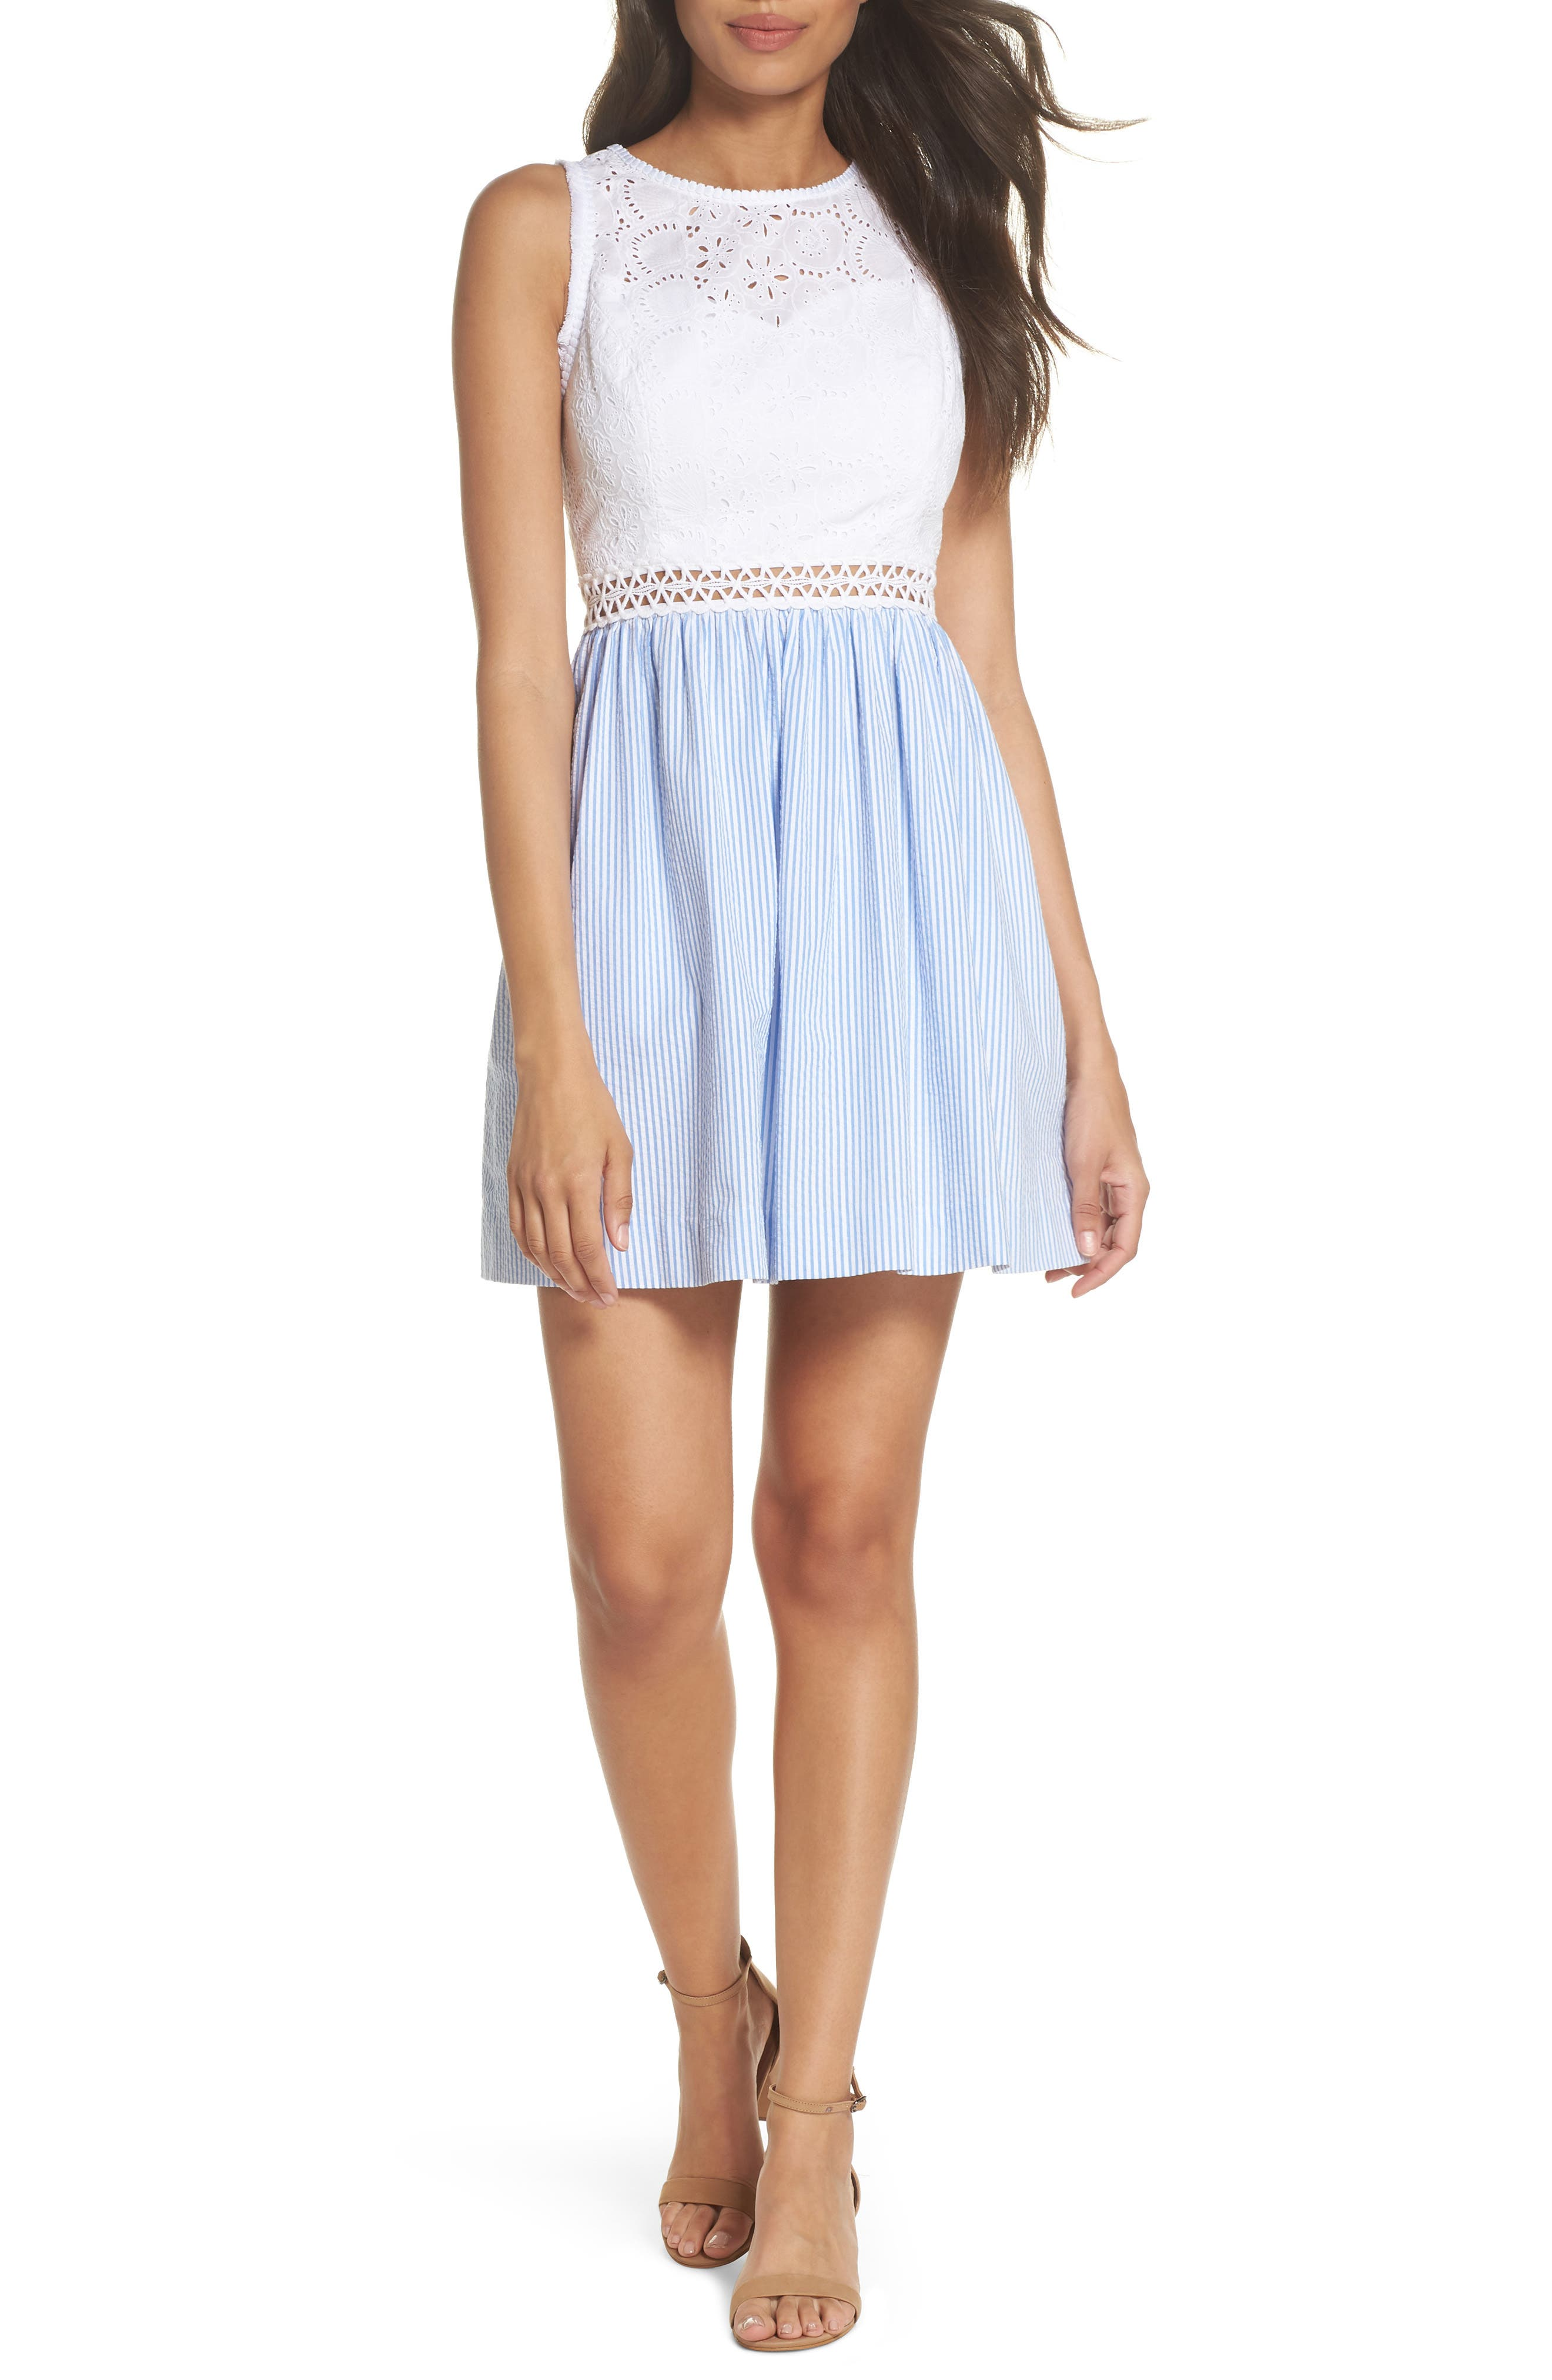 Lilly Pullitzer<sup>®</sup> Alivia Eyelet & Seersucker Fit & Flare Dress,                             Main thumbnail 1, color,                             BENNET BLUE YARD DYED STRIPE